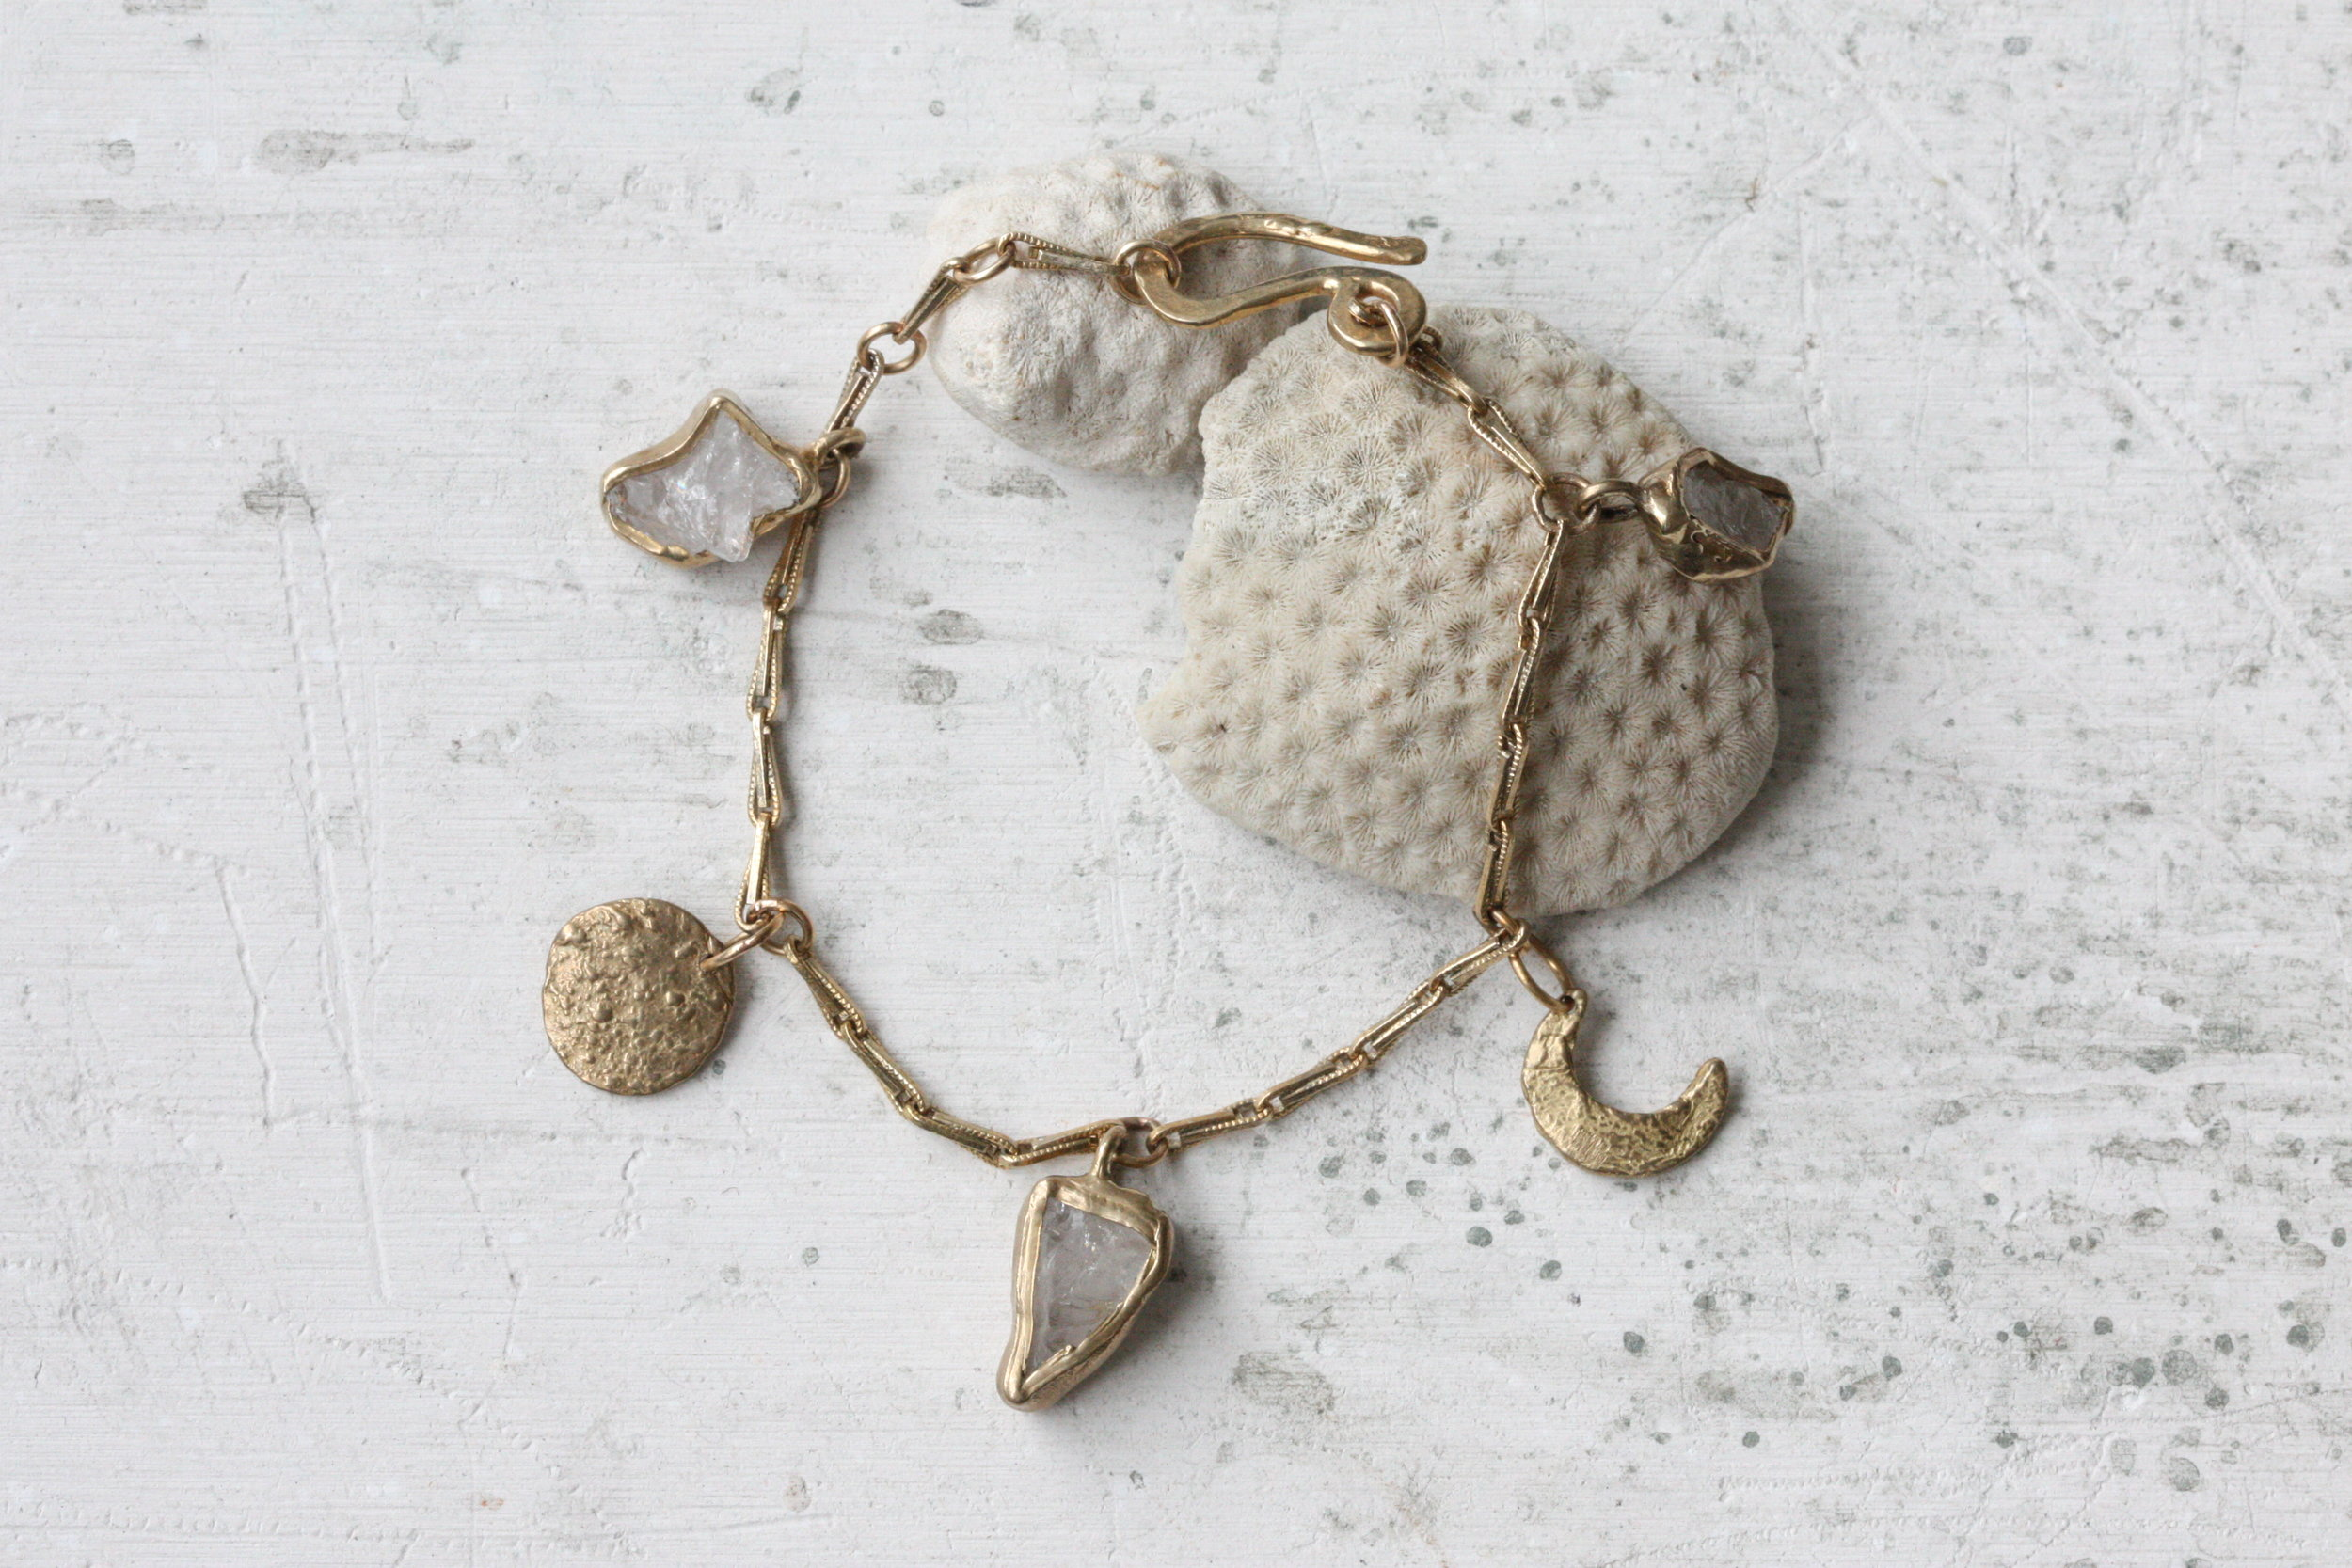 wax_and_wane_bracelet_shell.JPG